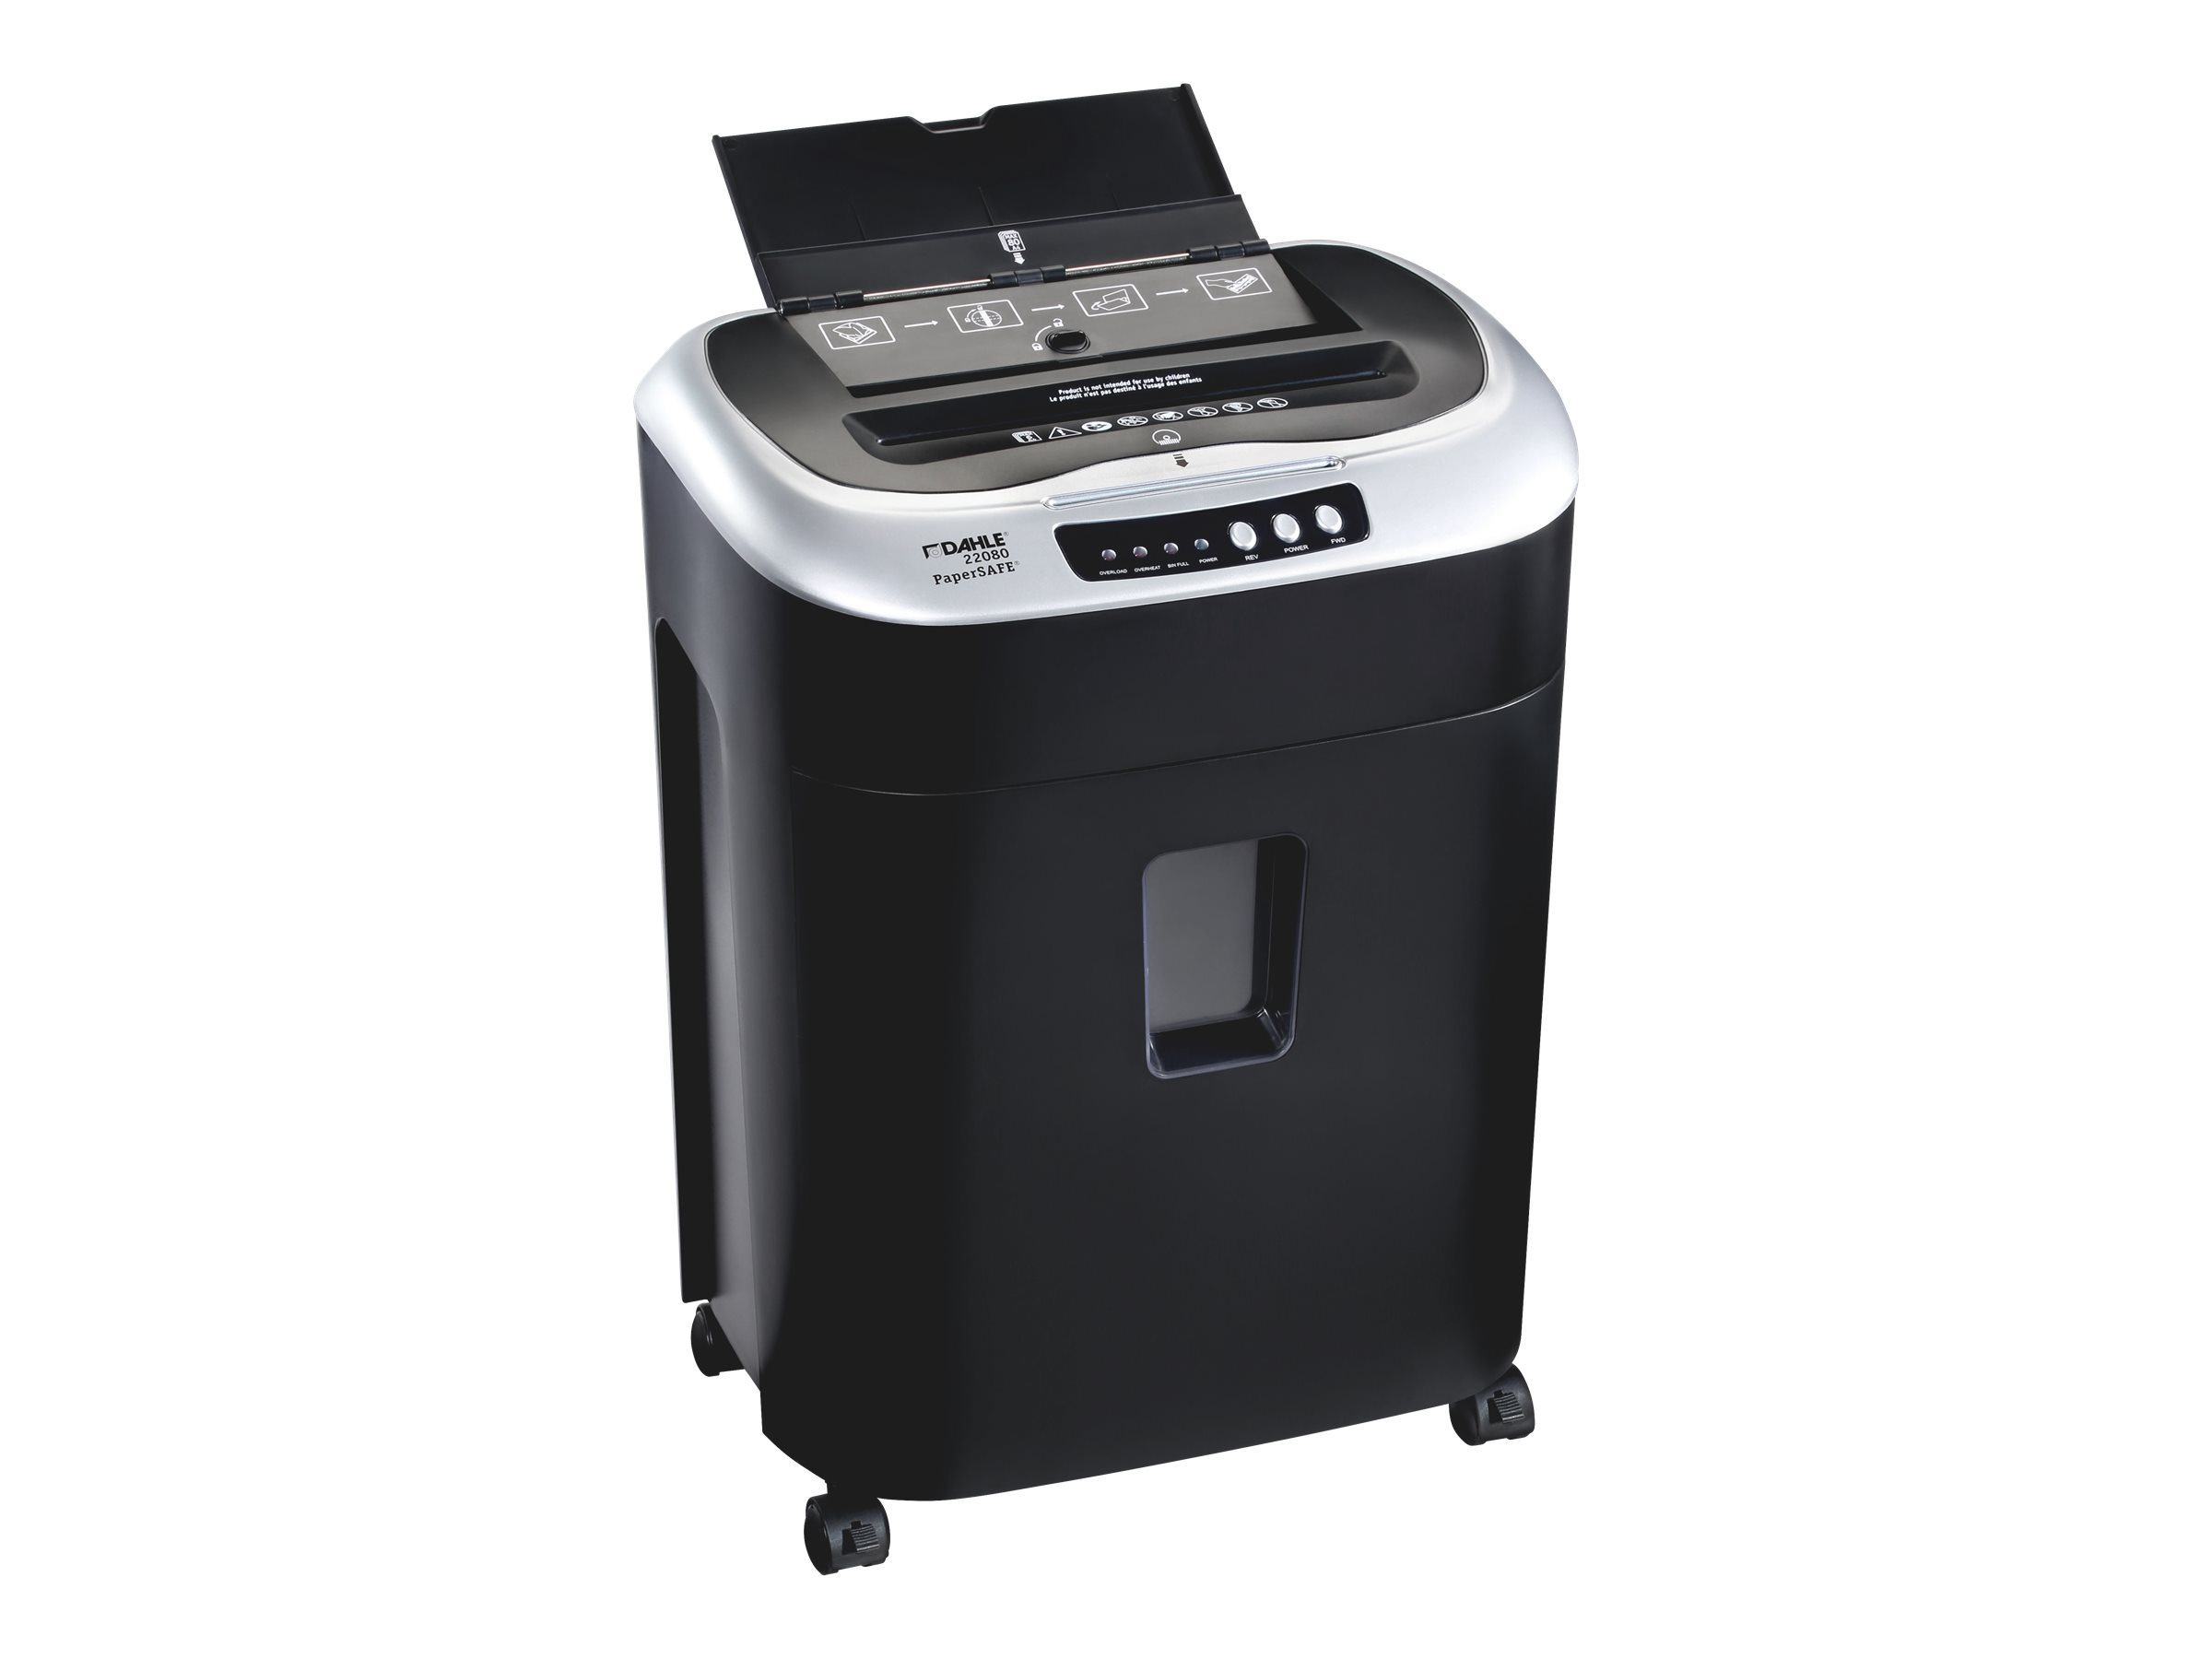 Dahle PaperSAFE 22080 - destructeur de documents